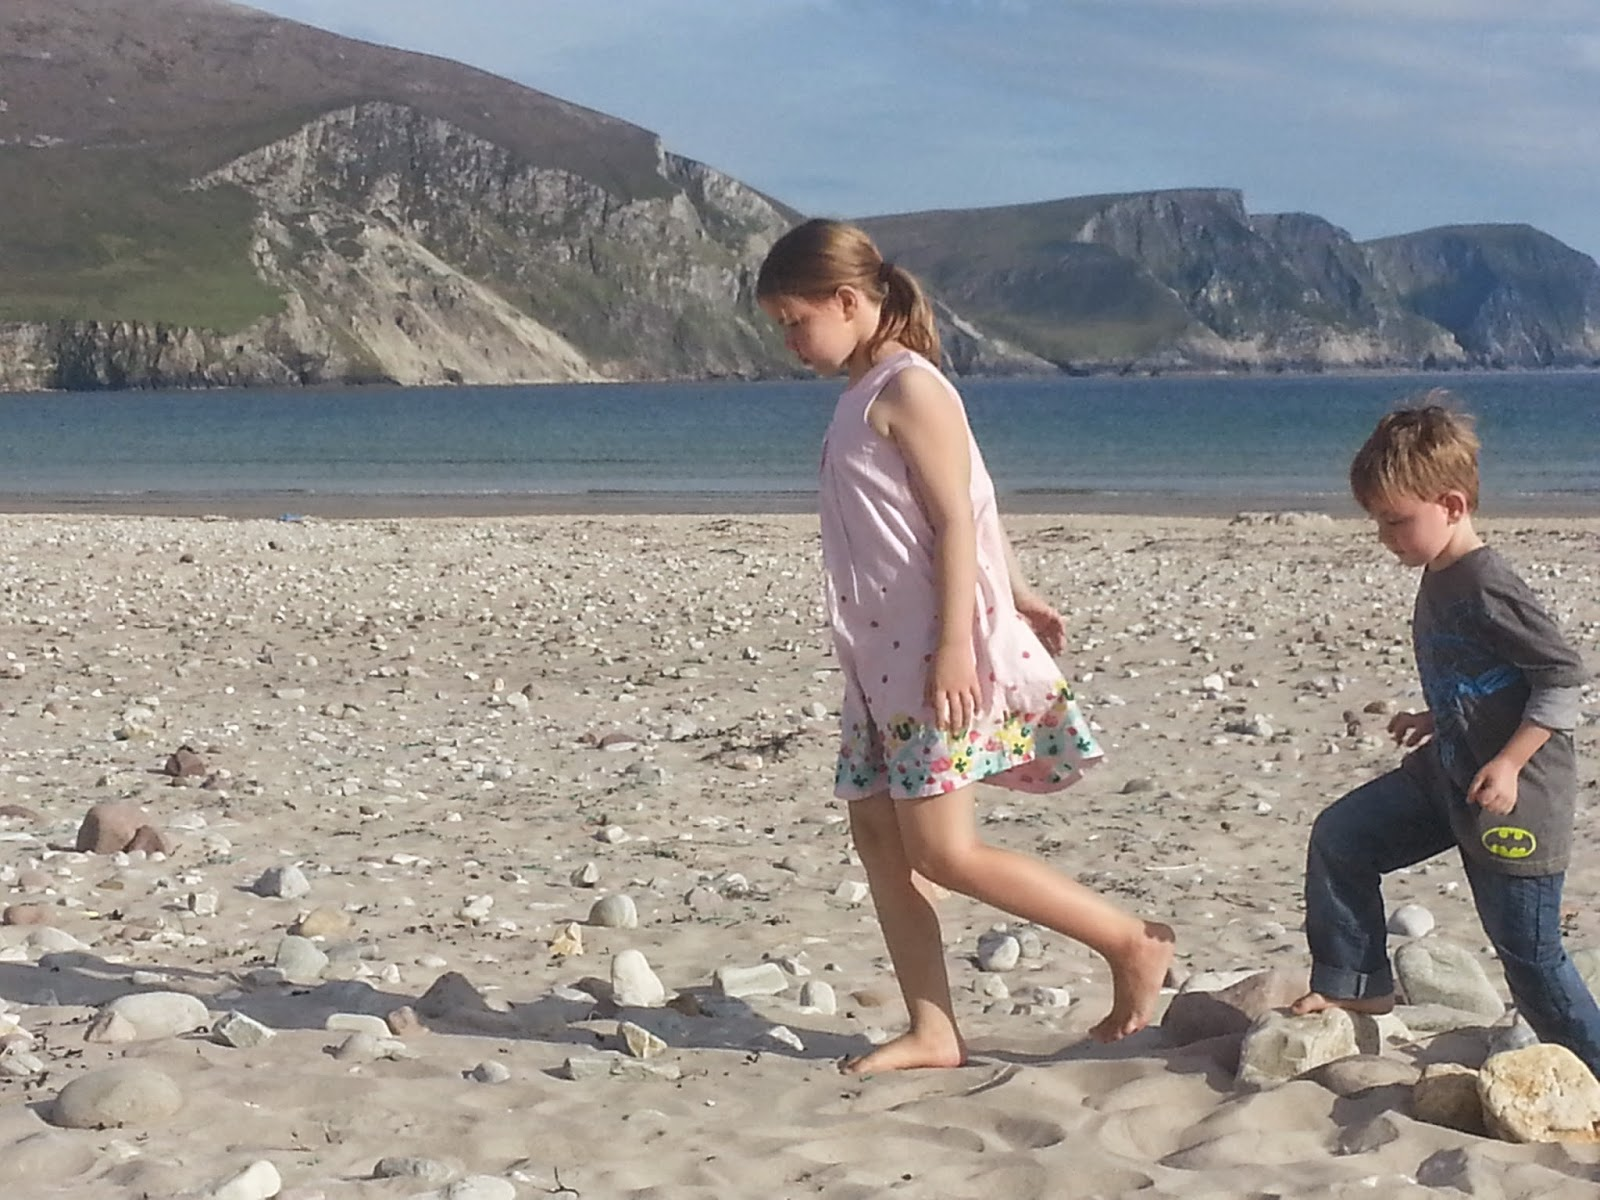 a young girl and young boy walking on keel beach with th minaun cliffs in the backgound